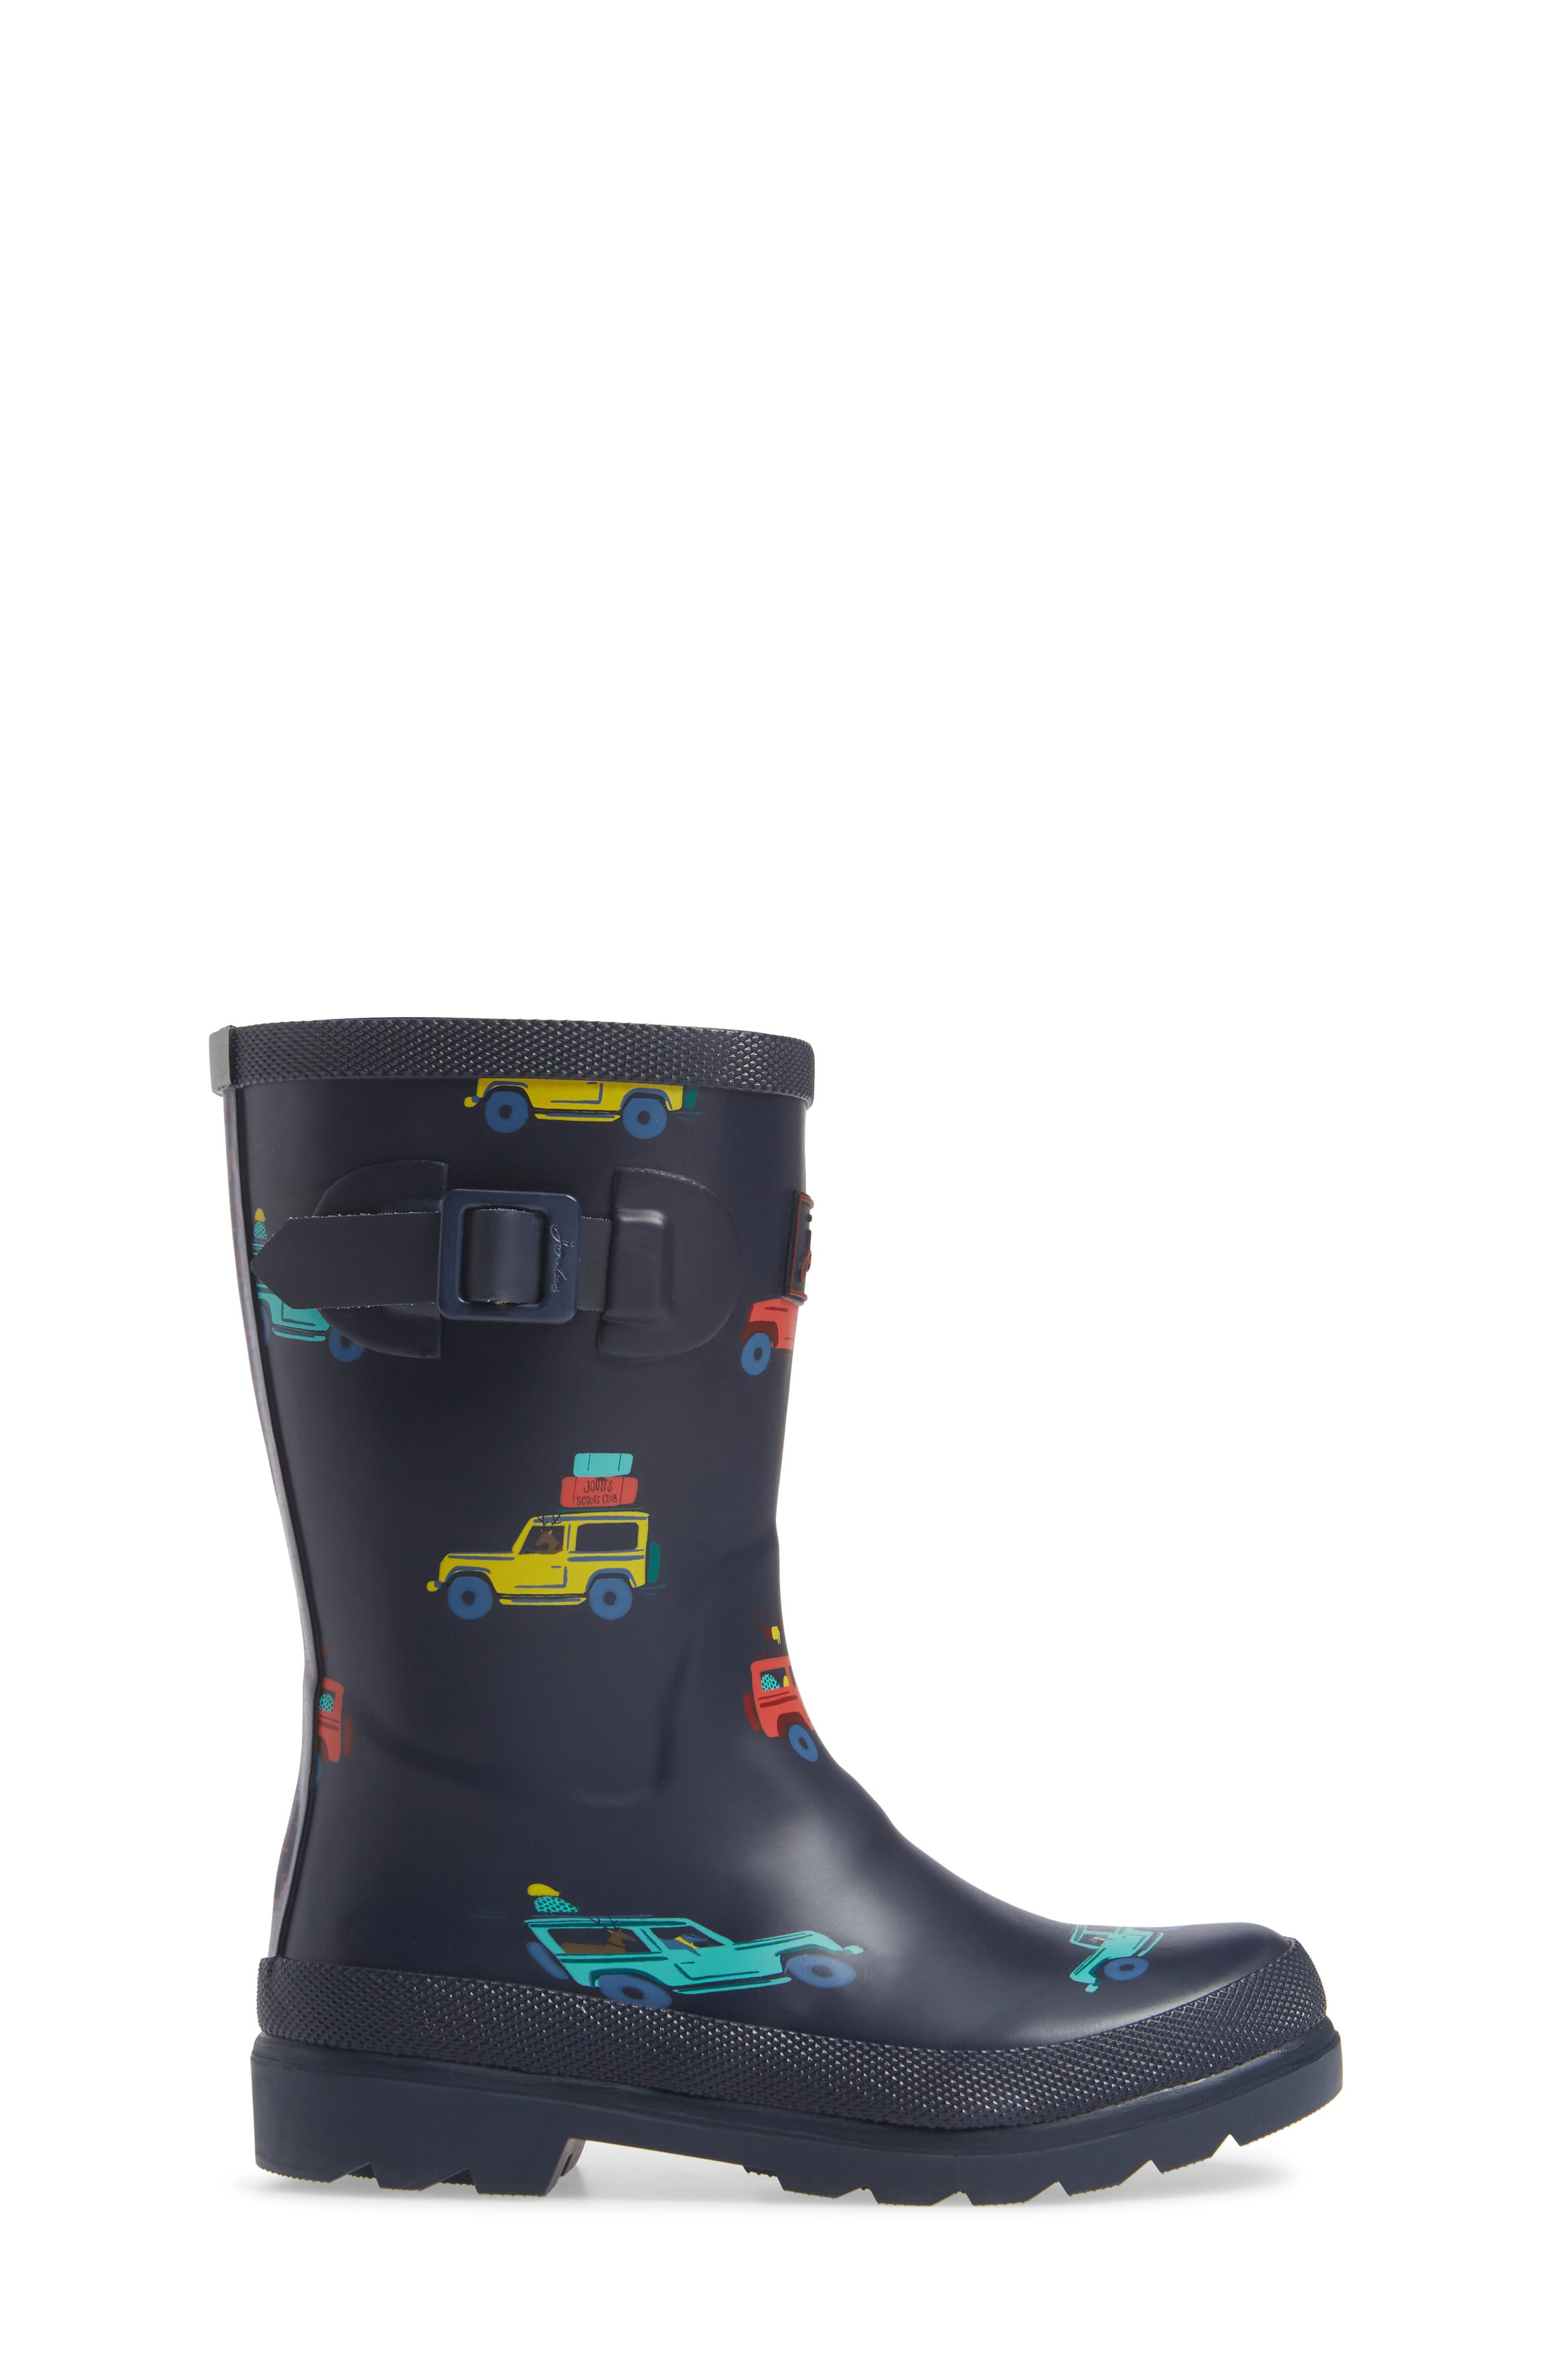 JOULES, Welly Print Waterproof Rain Boot, Alternate thumbnail 3, color, NAVY SCOUT AND ABOUT